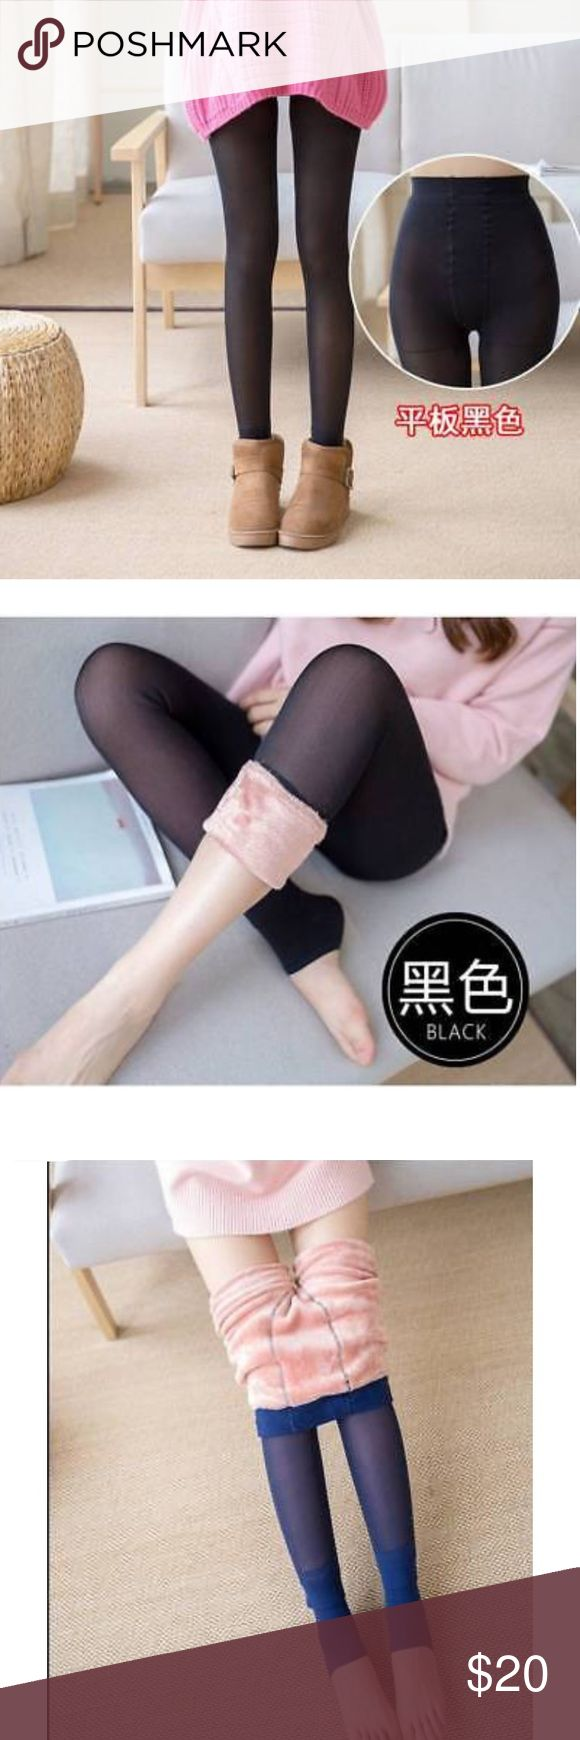 Fleece Lined Thermal Transparent Legging These tight makes it looks like u are wearing thin tights due to nude fleece on the inside. Great for winter to wear under skirts and still stay warm. Other